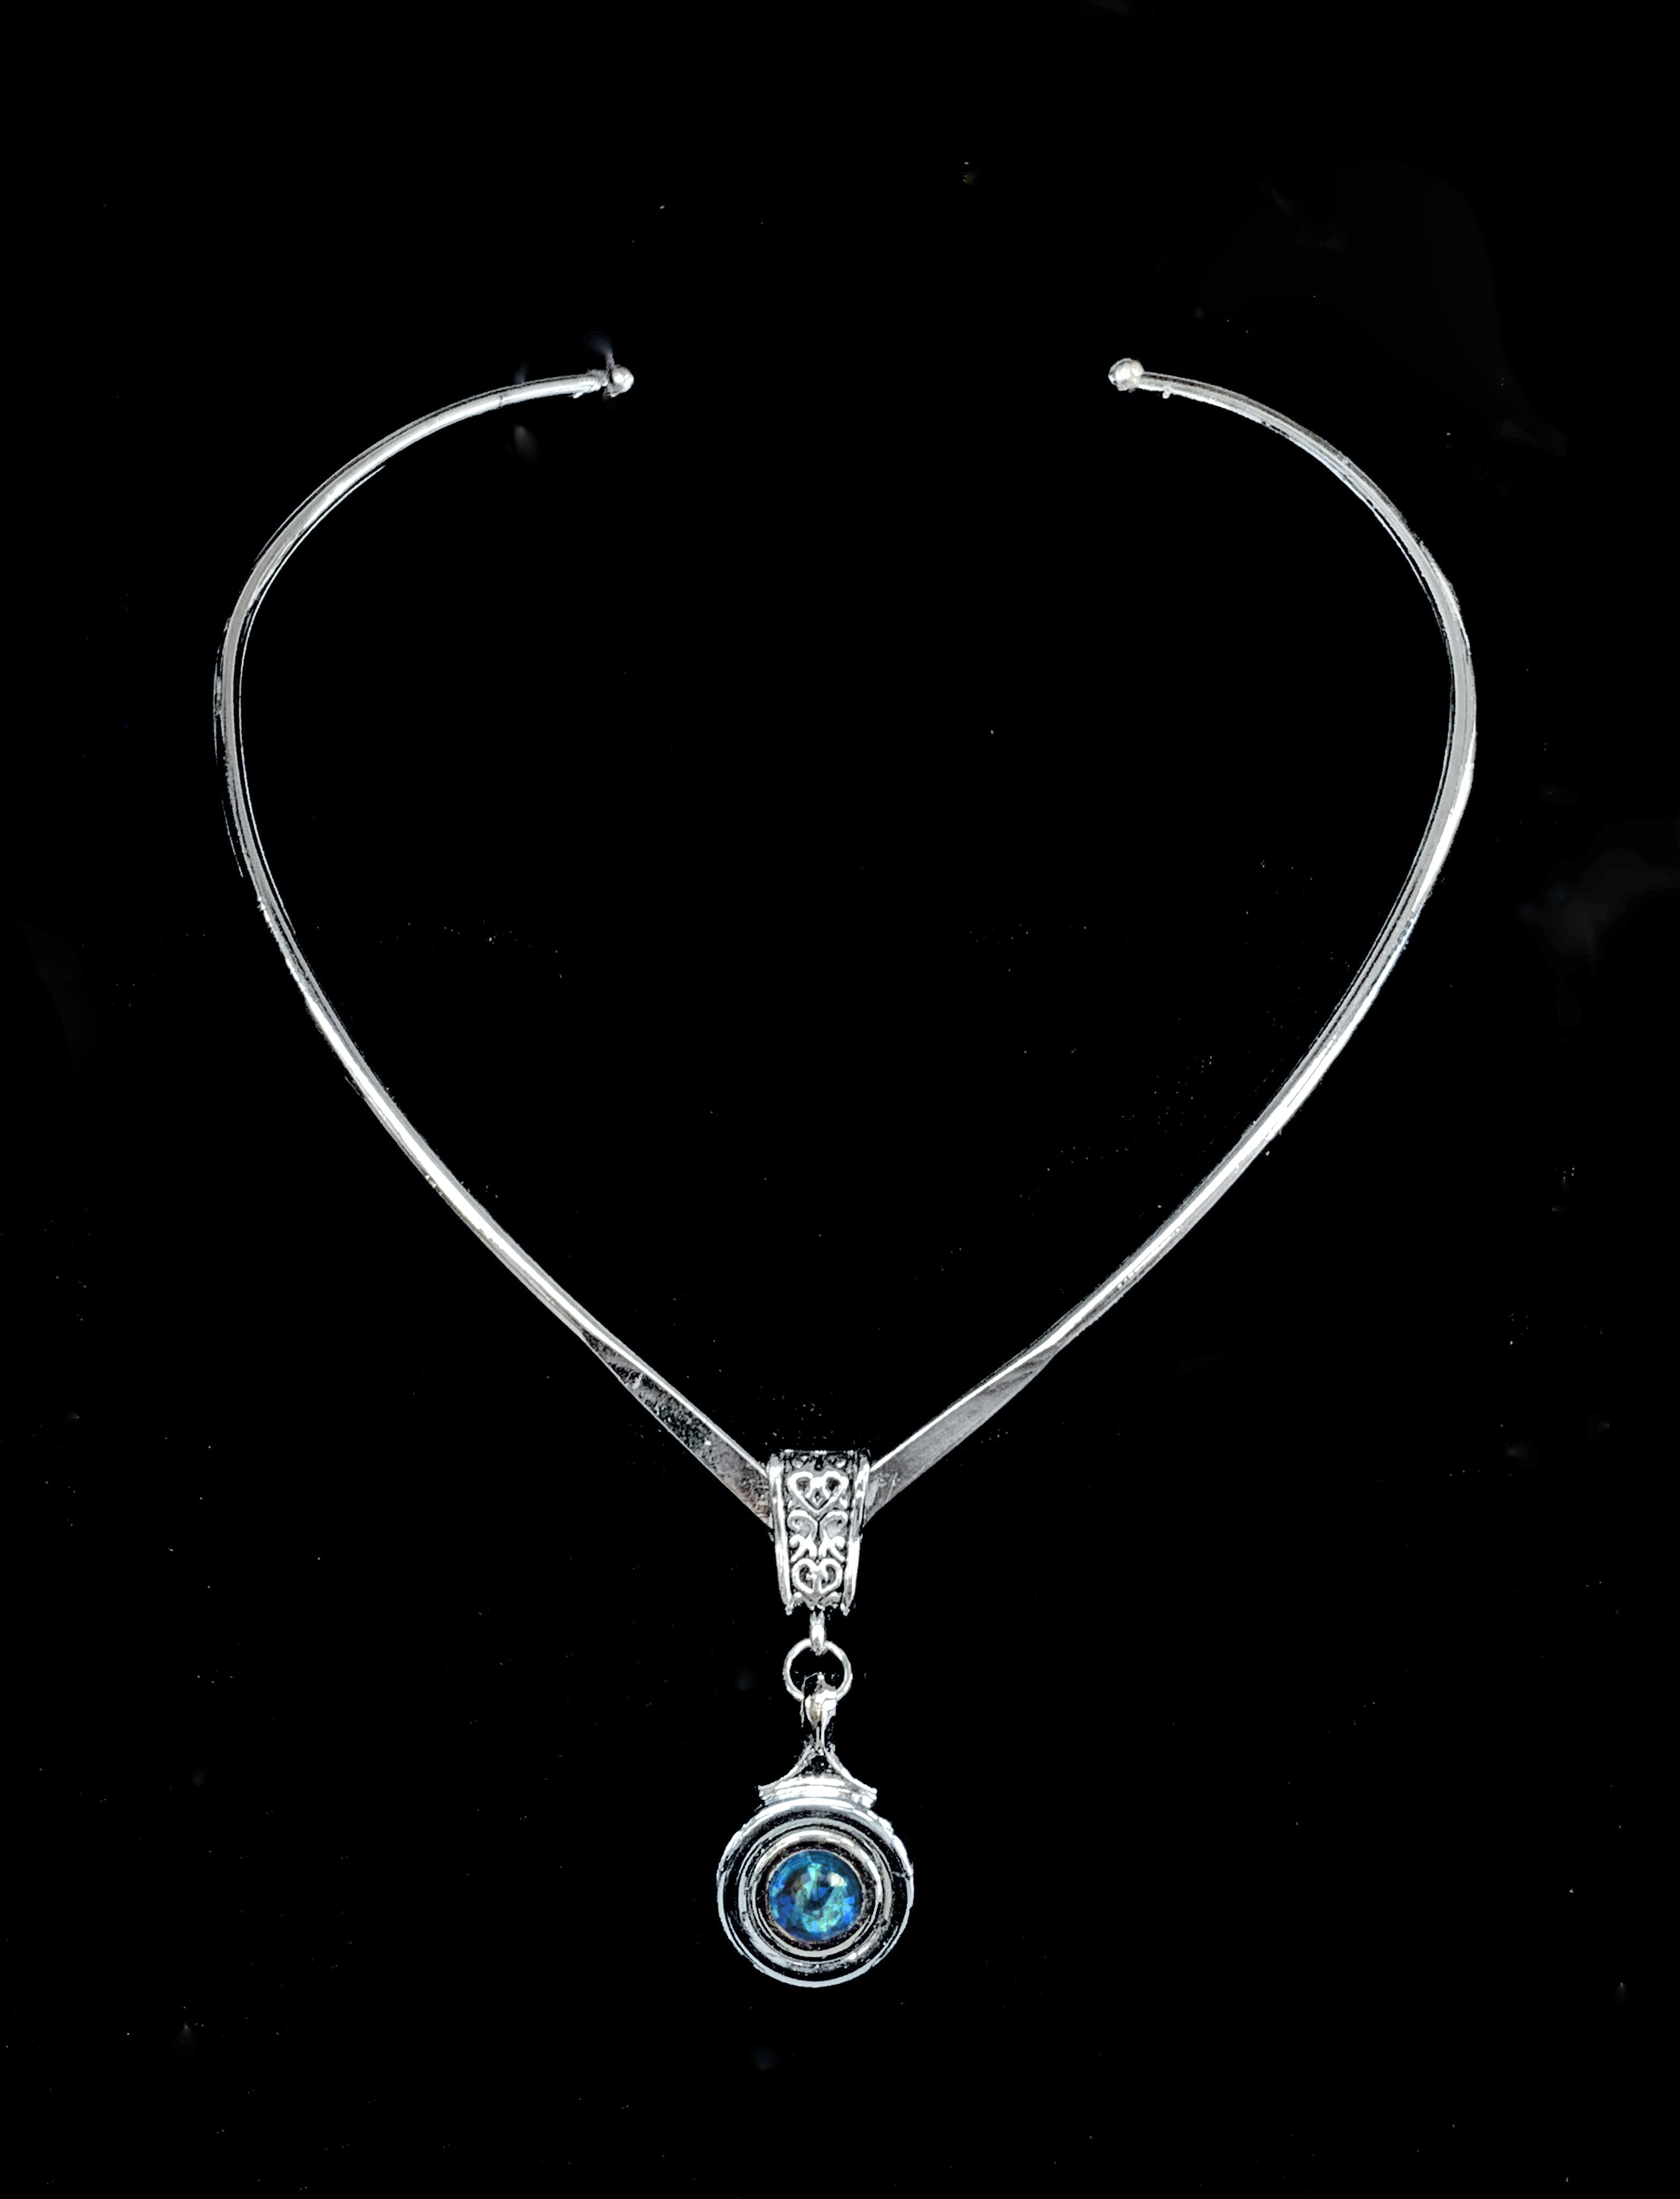 Necklace - 'Virtuosa' French Key with inset Swarovski Crystal on Shaped Wire